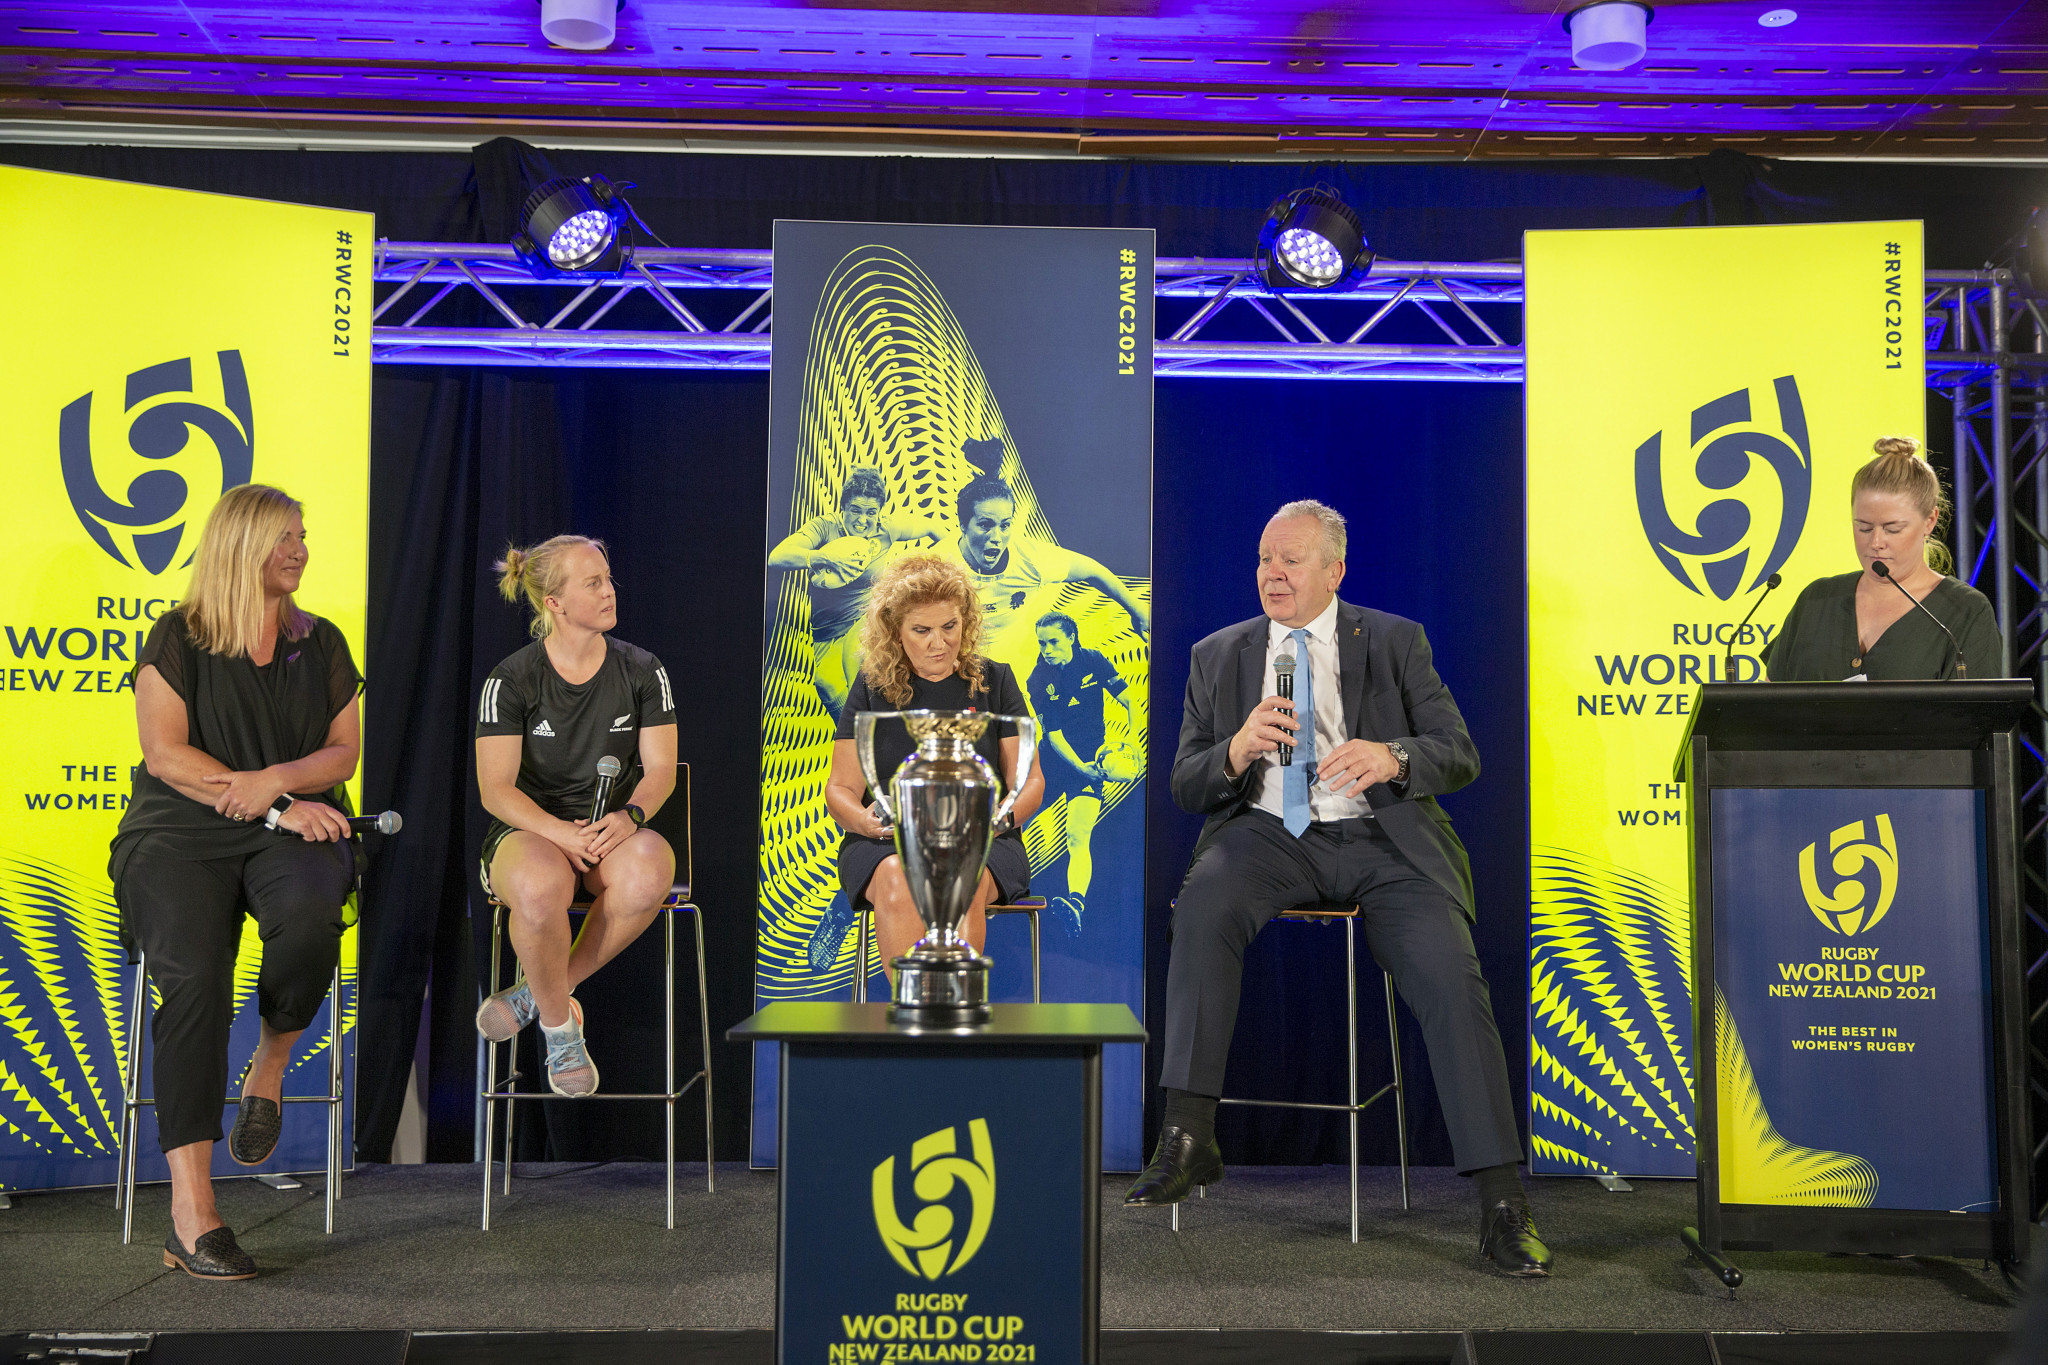 Postponement of Rugby World Cup 2021 confirmed